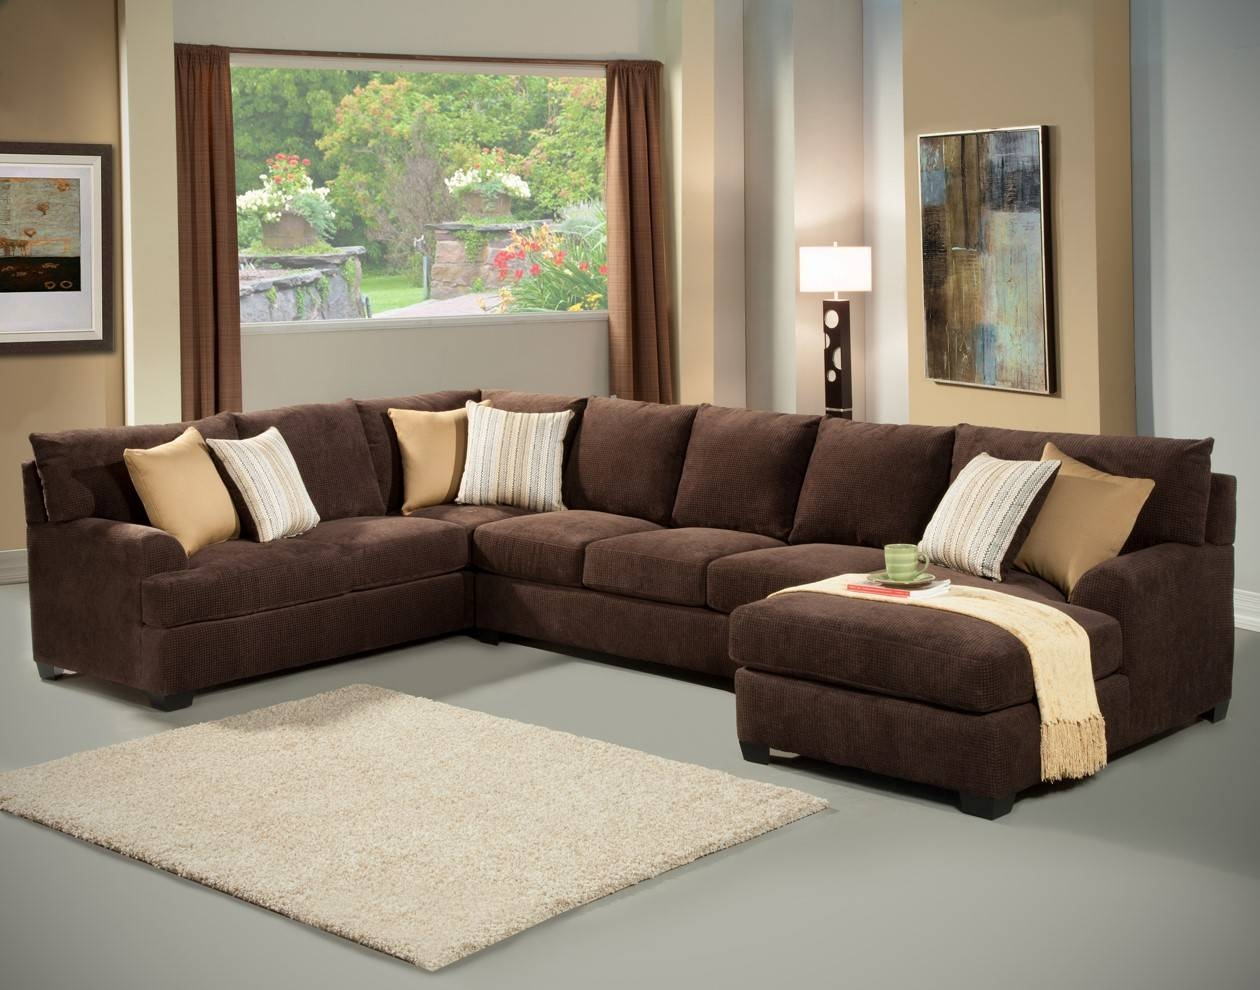 Living Room: Sectional Leather Sofas | Denim Sectional Sofa intended for Chocolate Brown Sectional Sofa (Image 23 of 30)